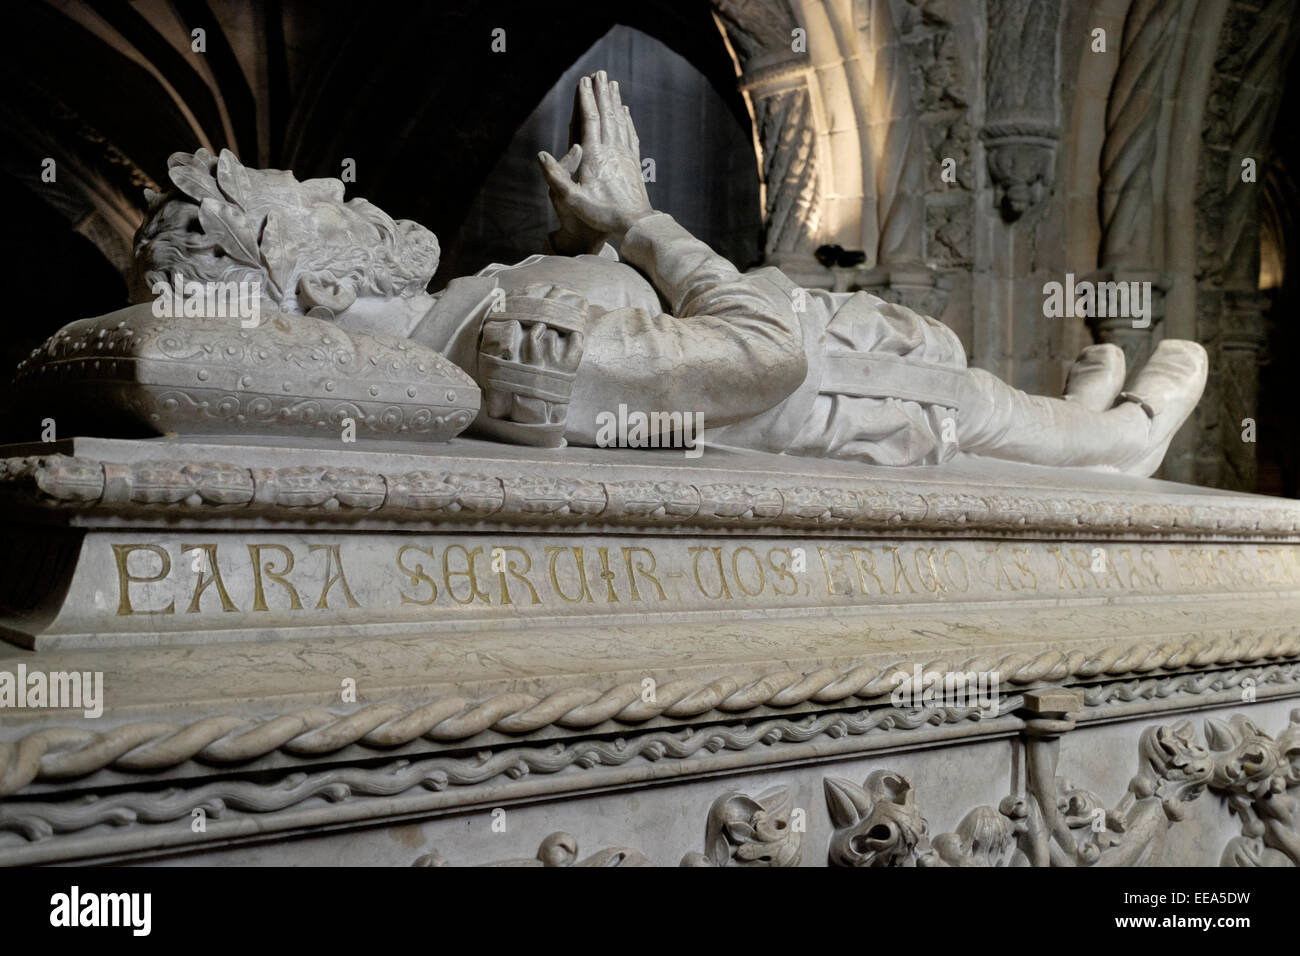 Portugal, Lisbon, Jerónimos Monastery: Tomb of the Portugese poet, Luis Vaz de Camoes Stock Photo